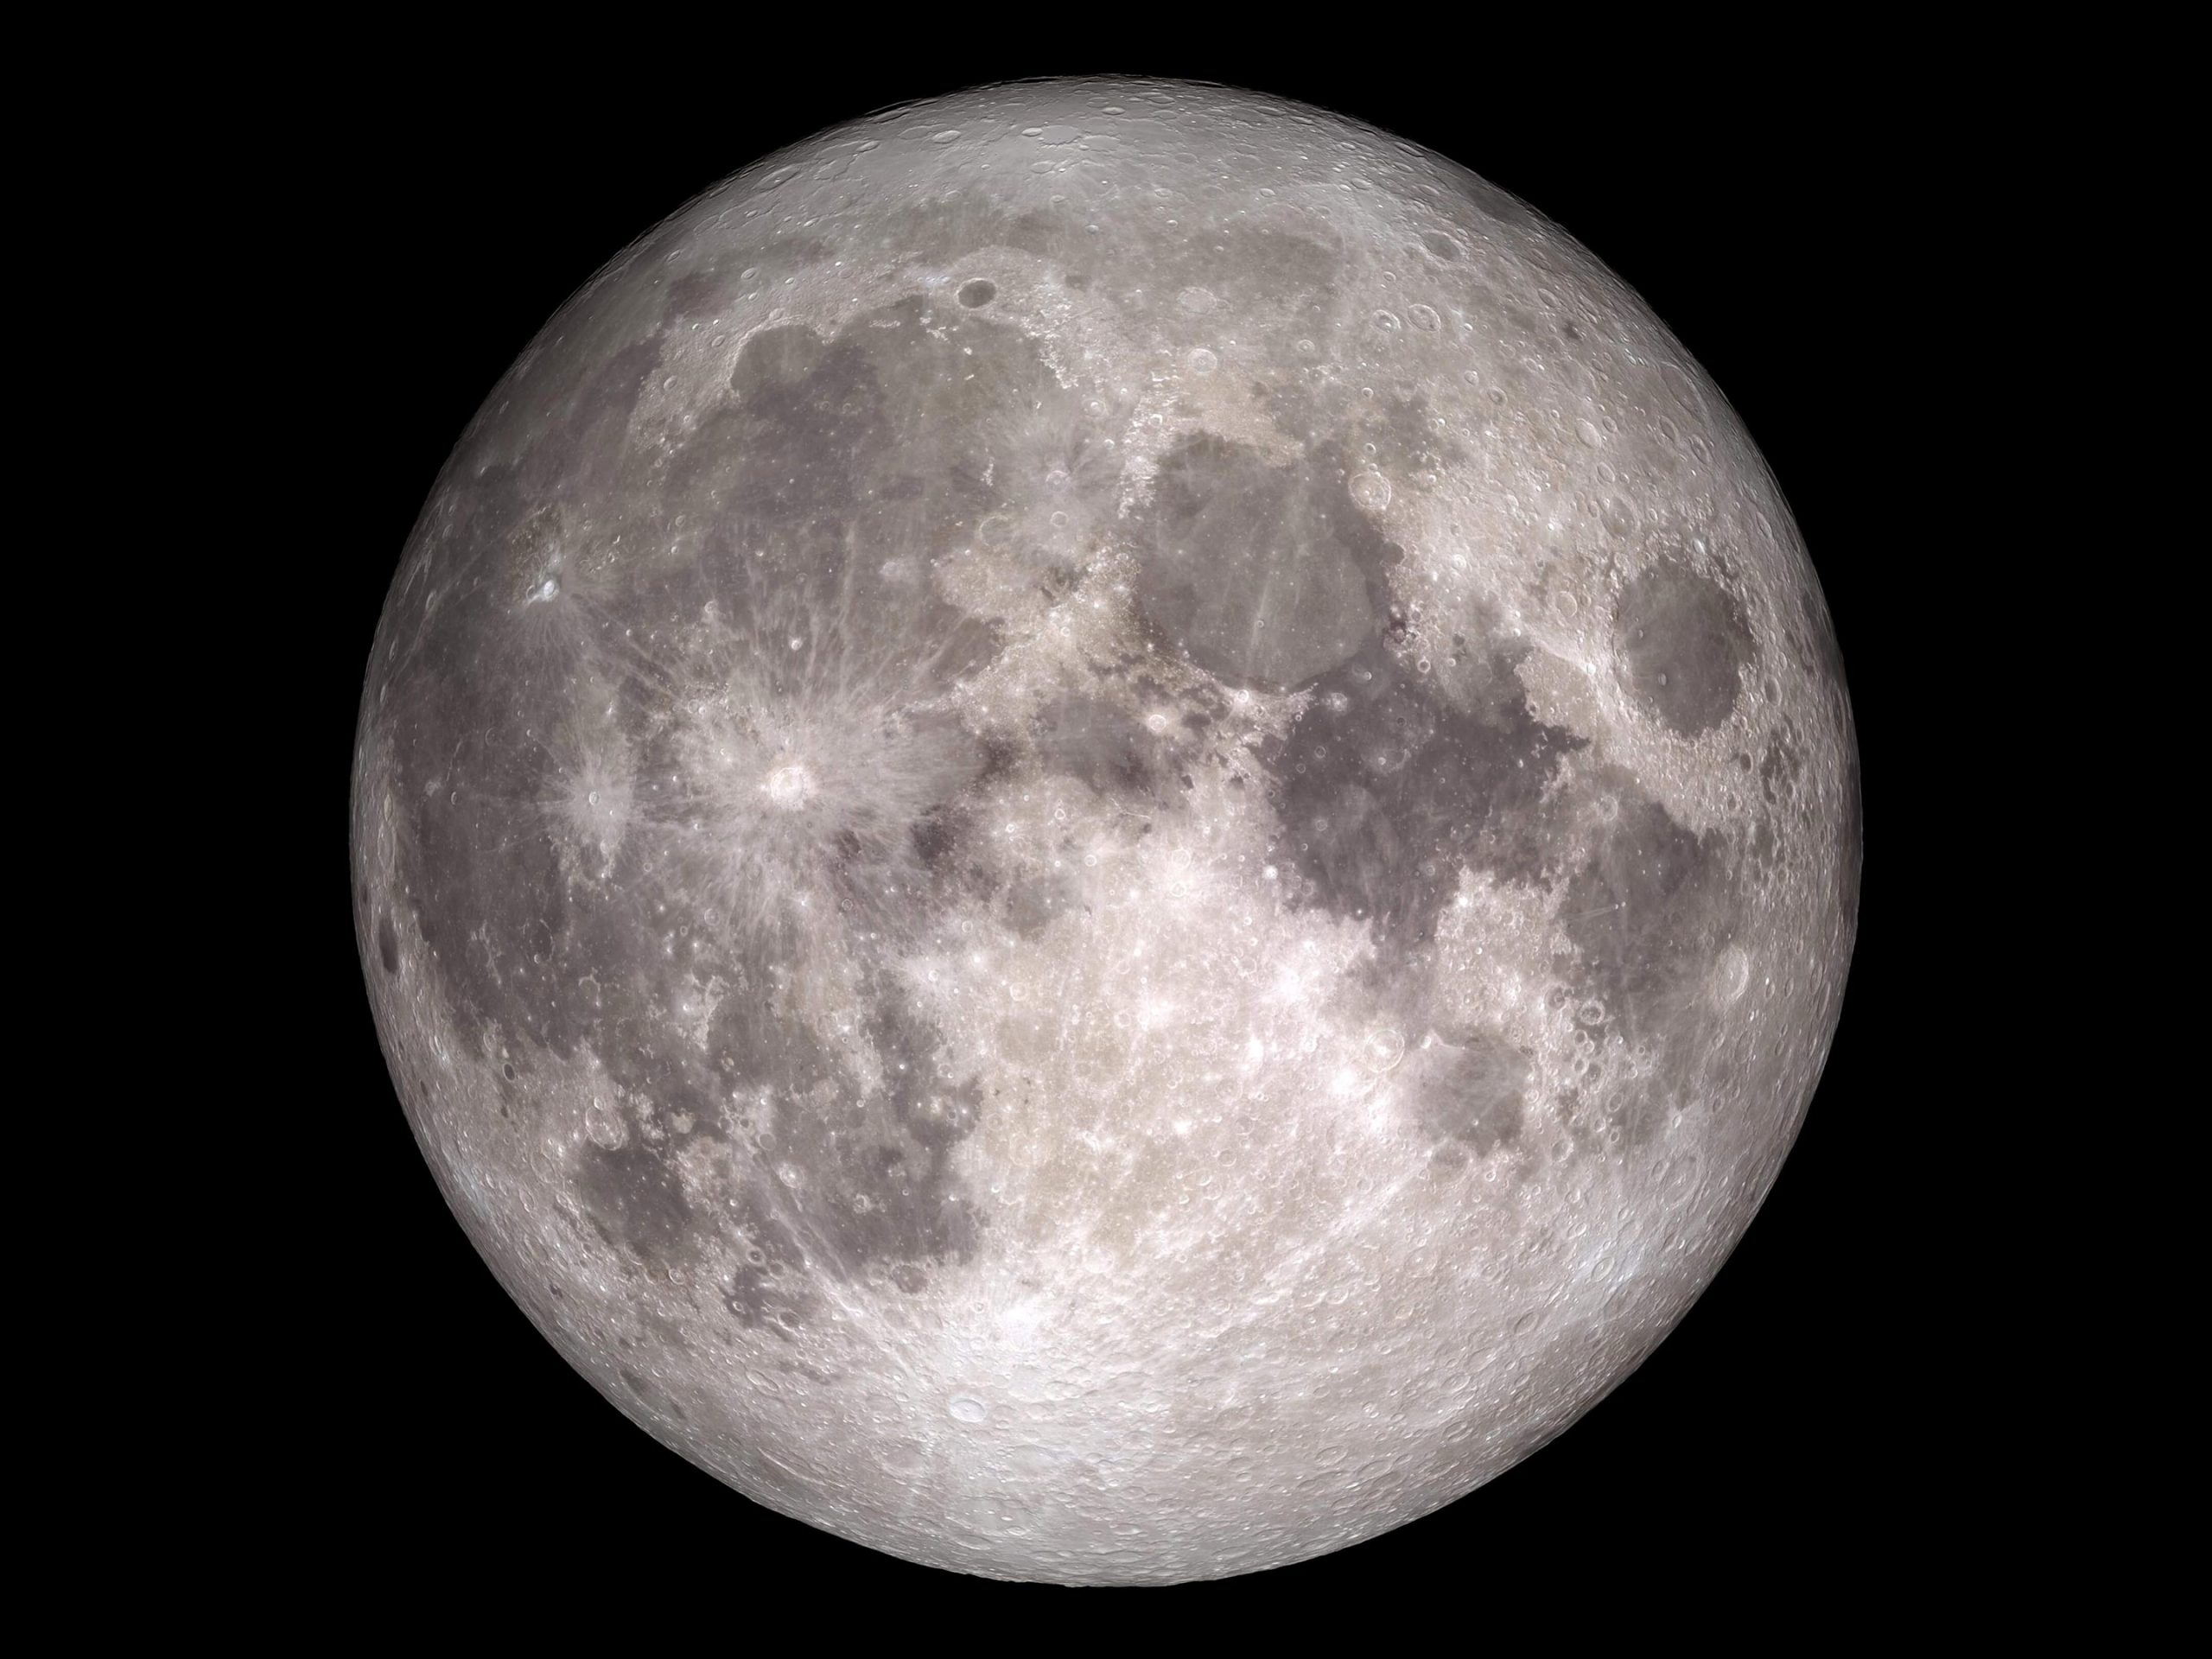 Moon may affect us more than we think